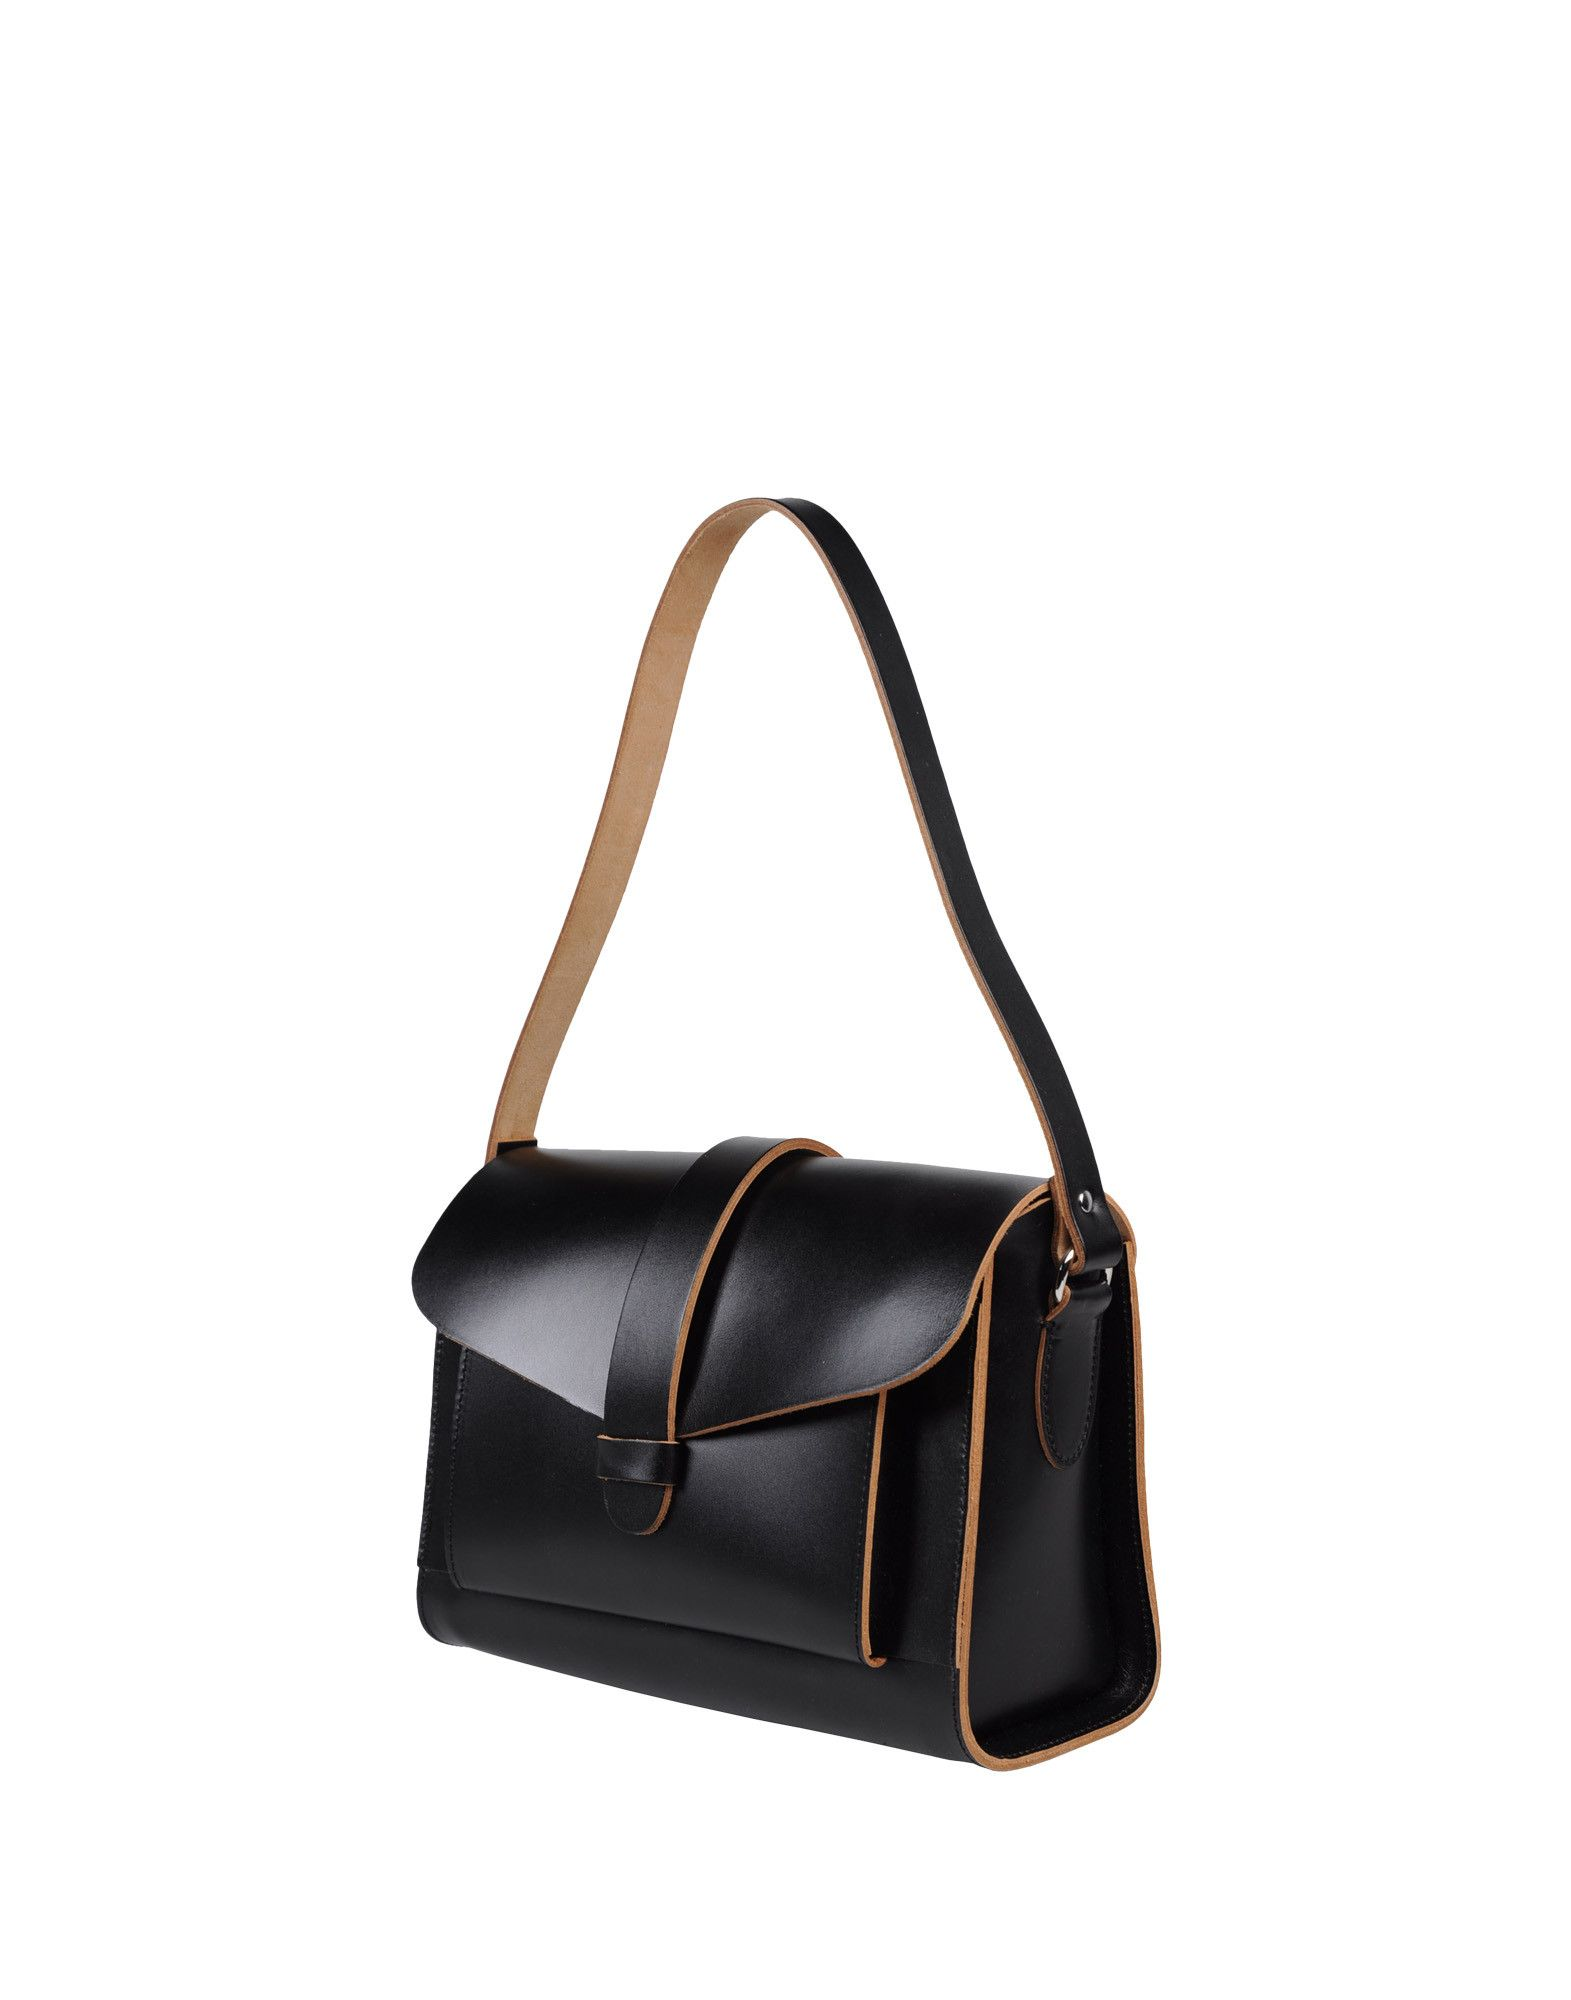 Just a simple, classy black leather purse. | Minimal women's bags ...